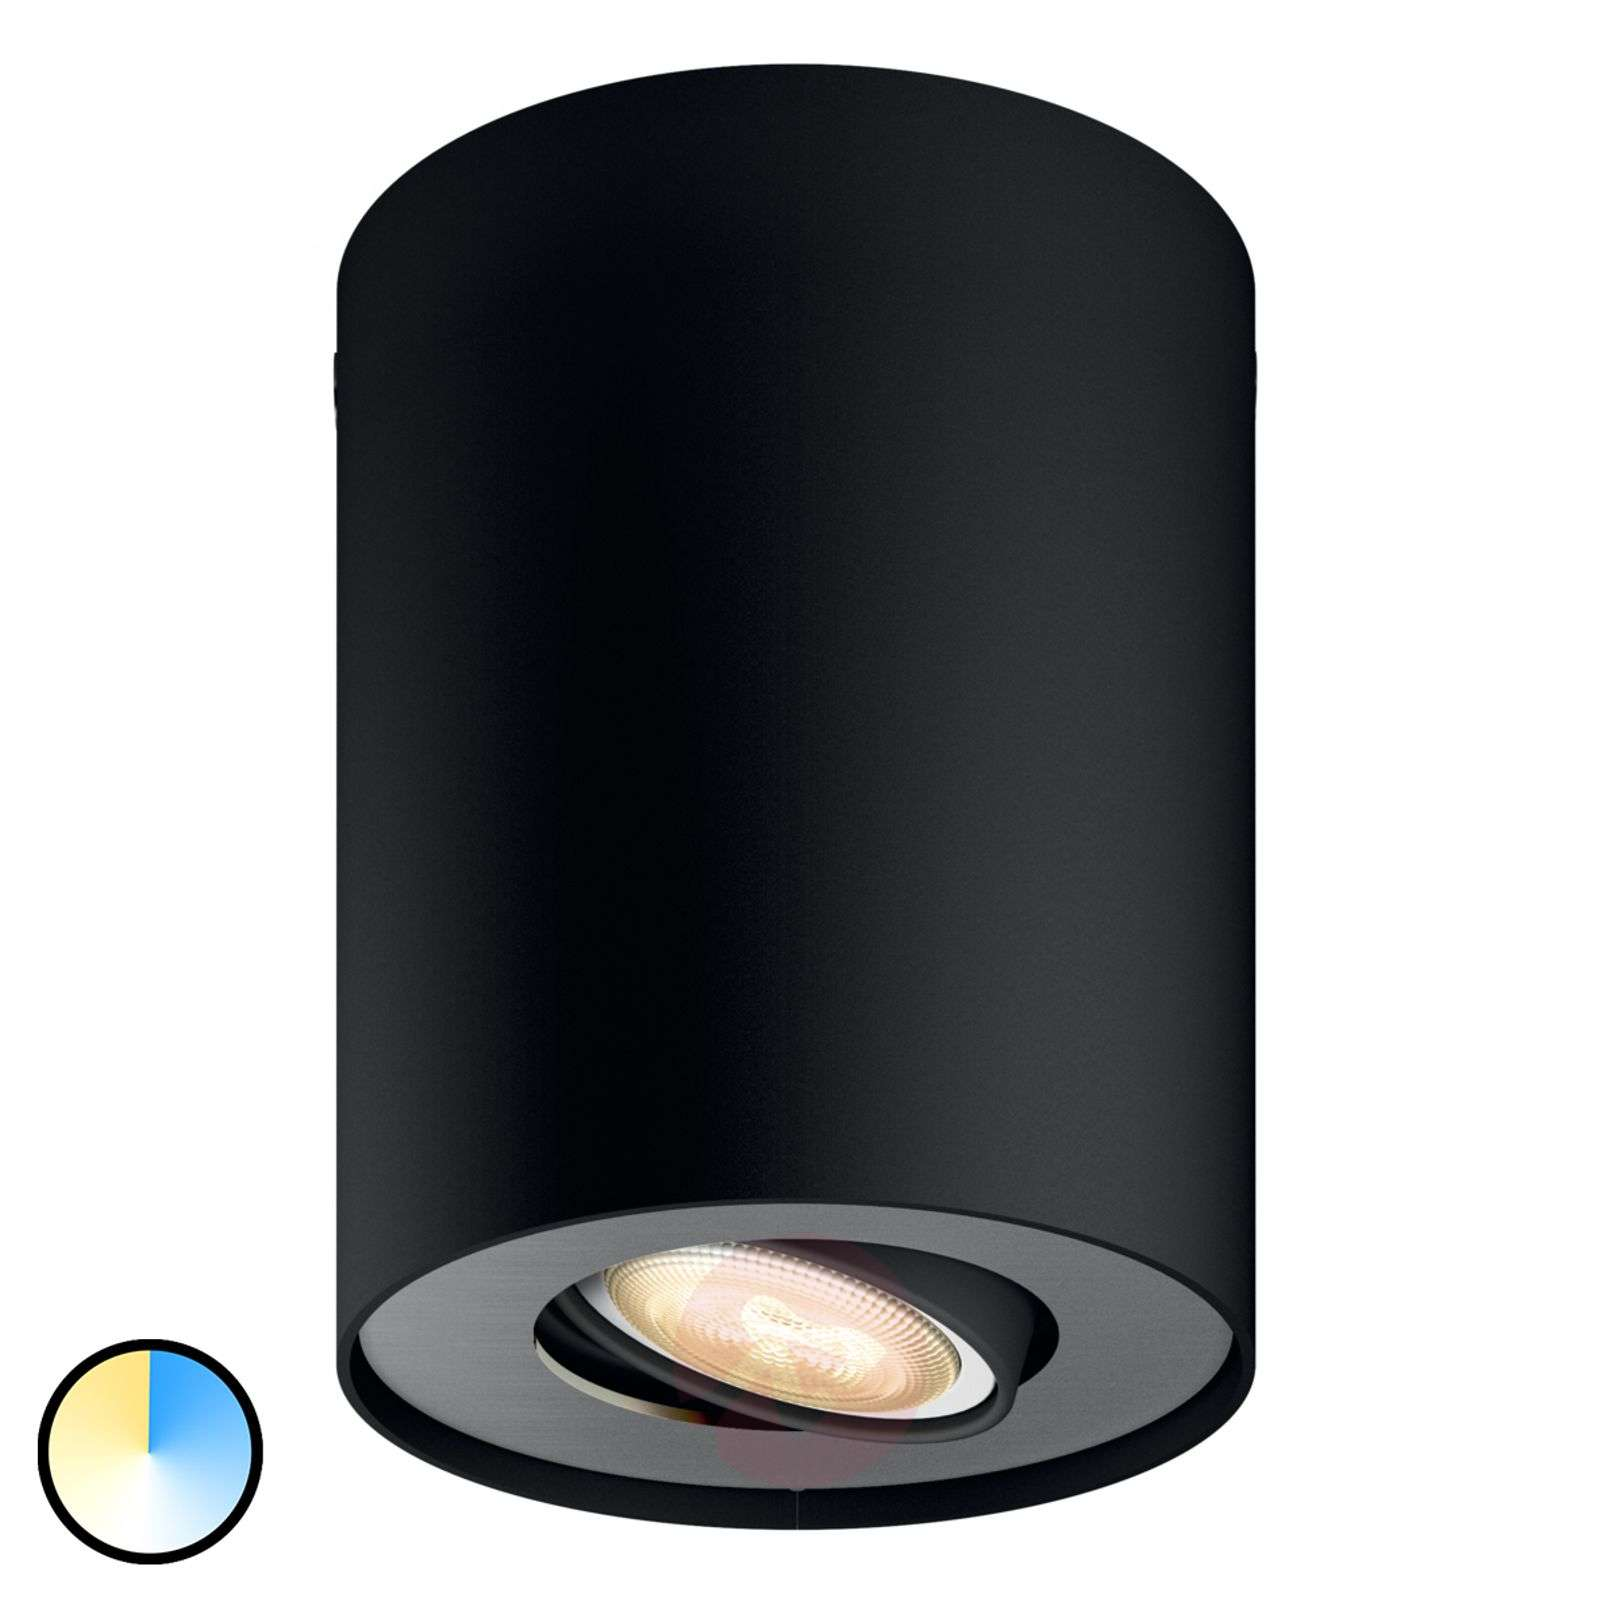 Philips Hue Pillar spot con dimmer, nero-7531880-01